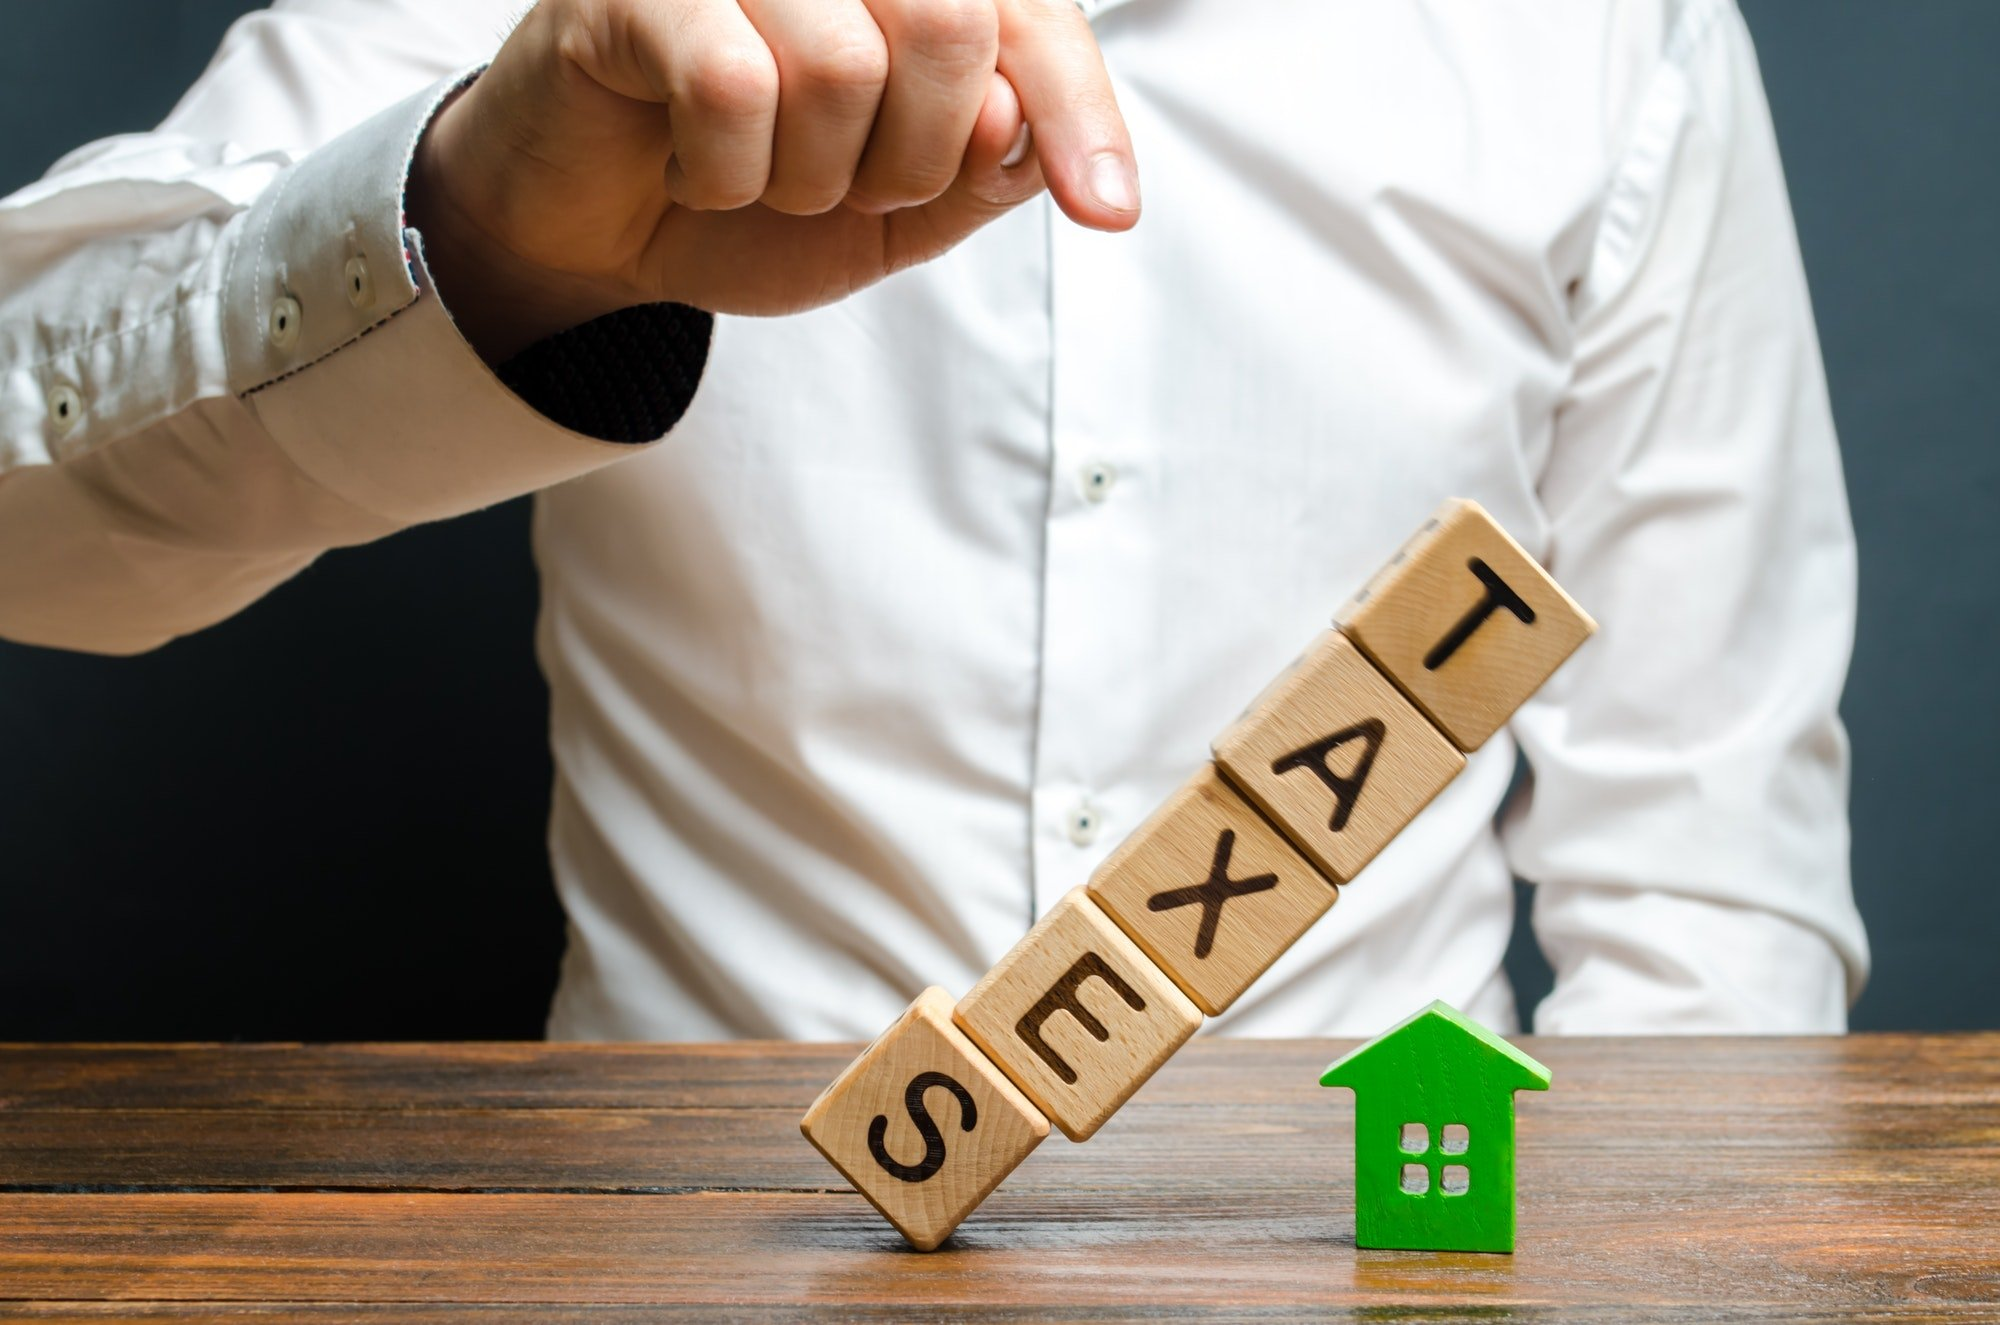 The man pushes down the tower of cubes with the word Taxes on the figure of the house